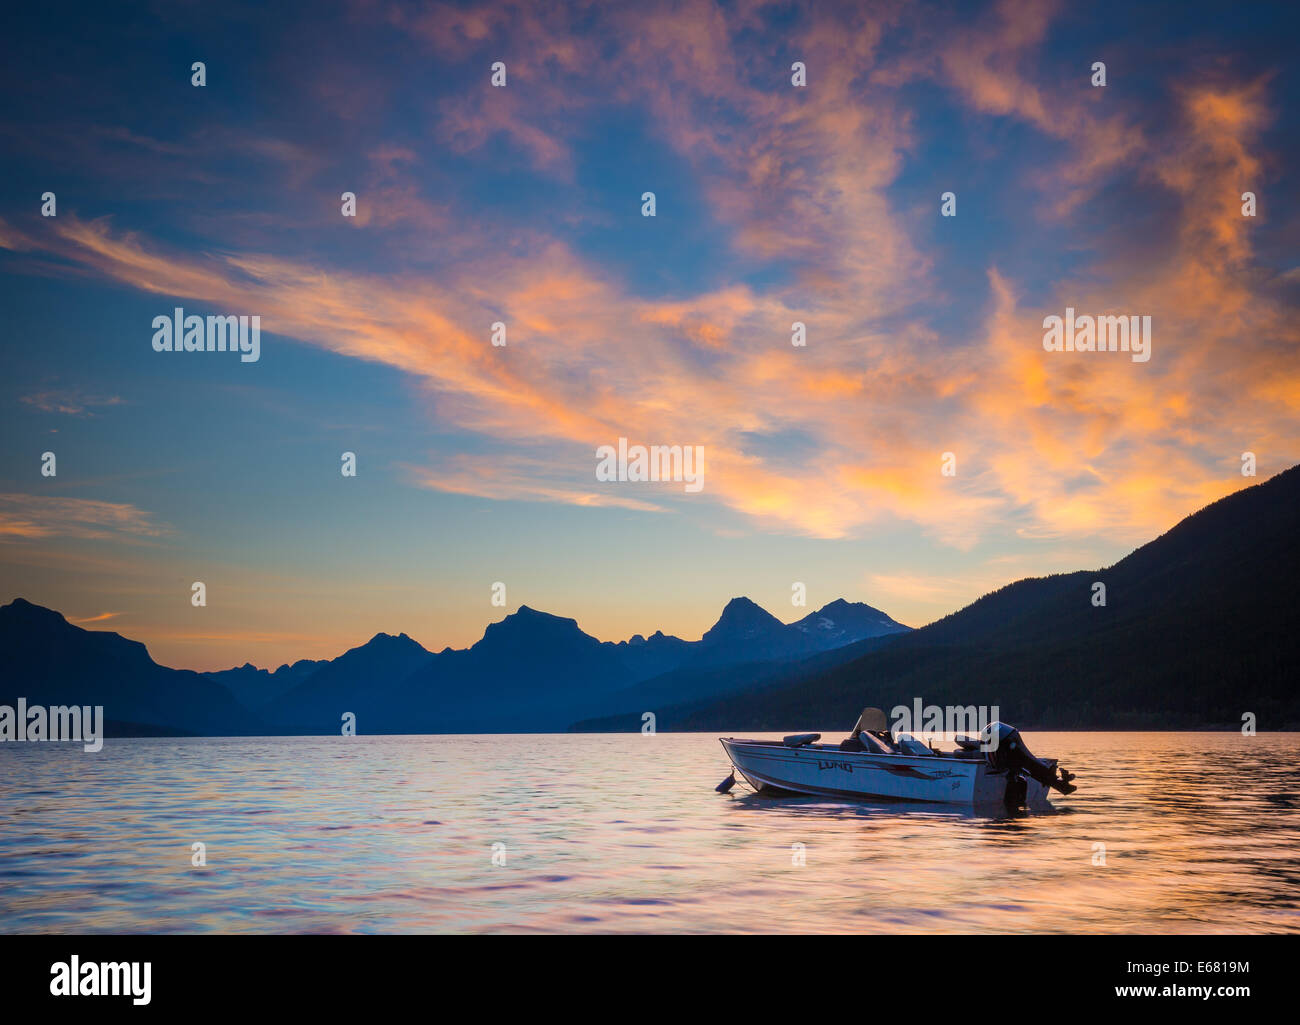 Lake McDonald in Glacier National Park, in Montana near the US-Canada border - Stock Image